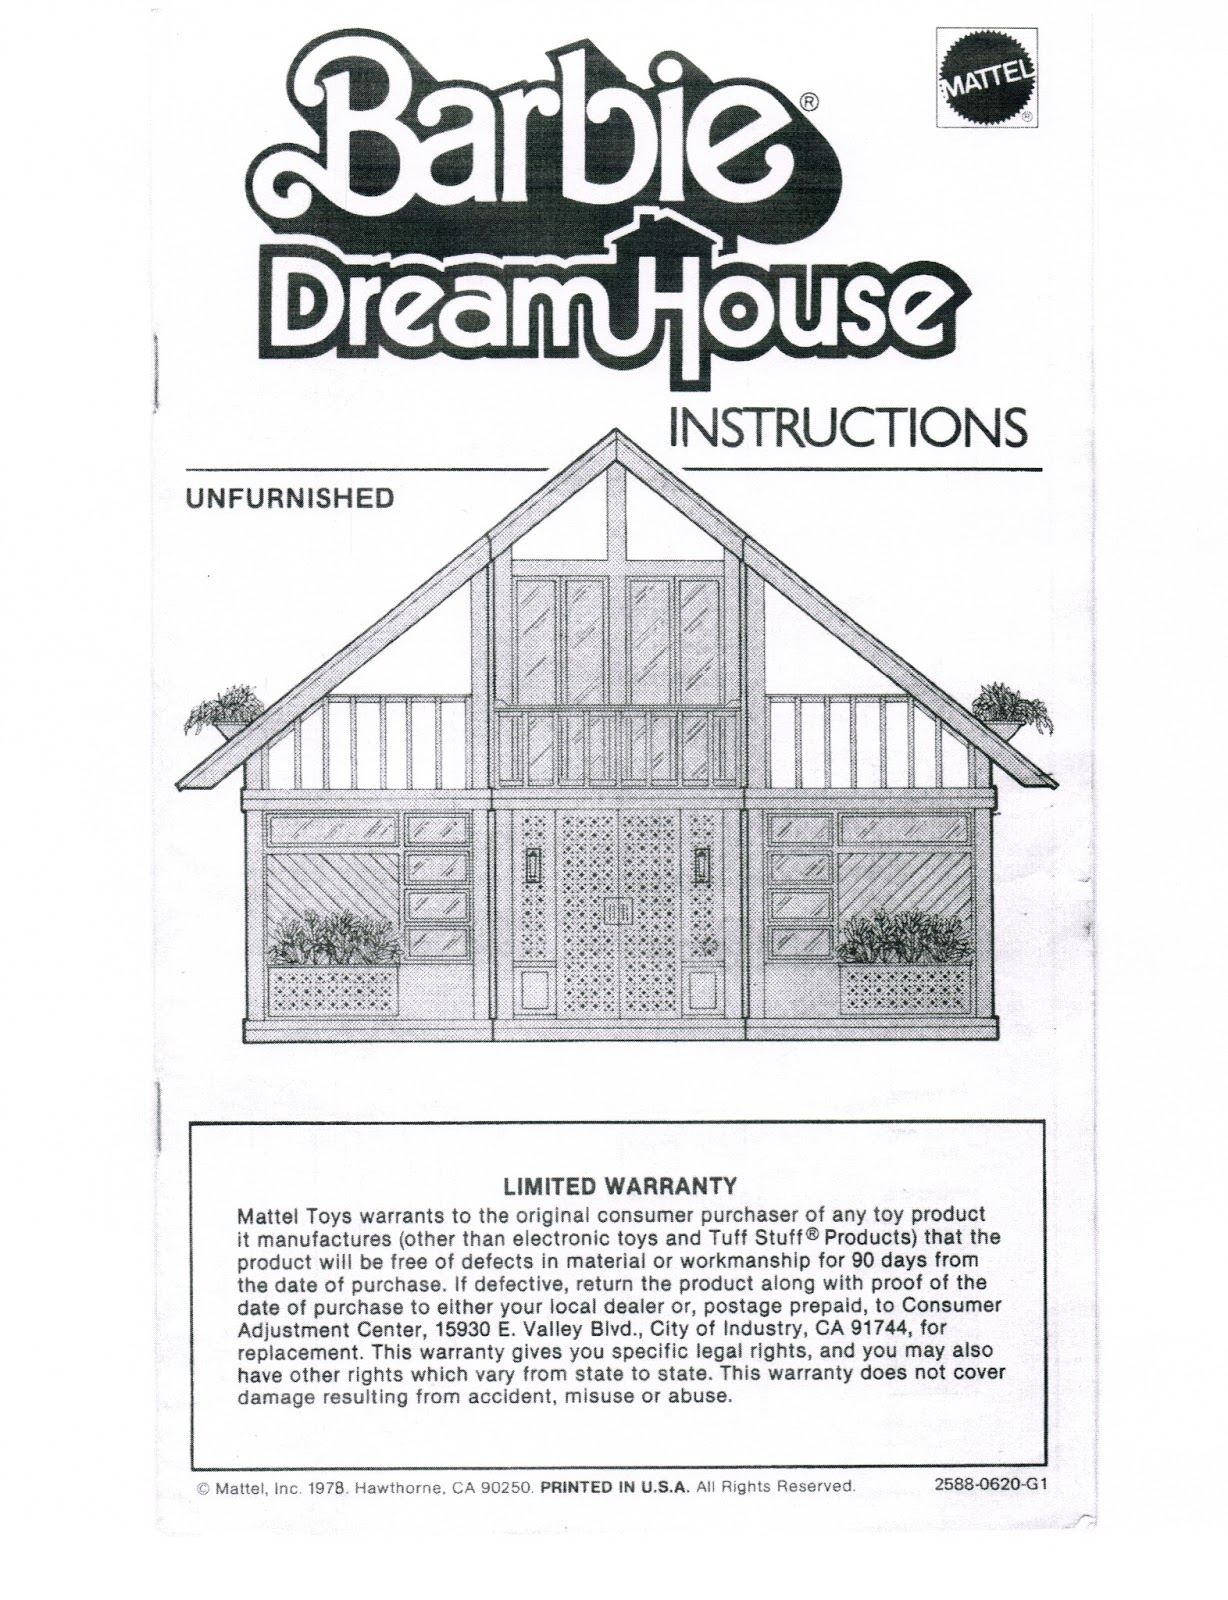 Paperwork 1978 A Frame Unfurnished Dream House Instructions